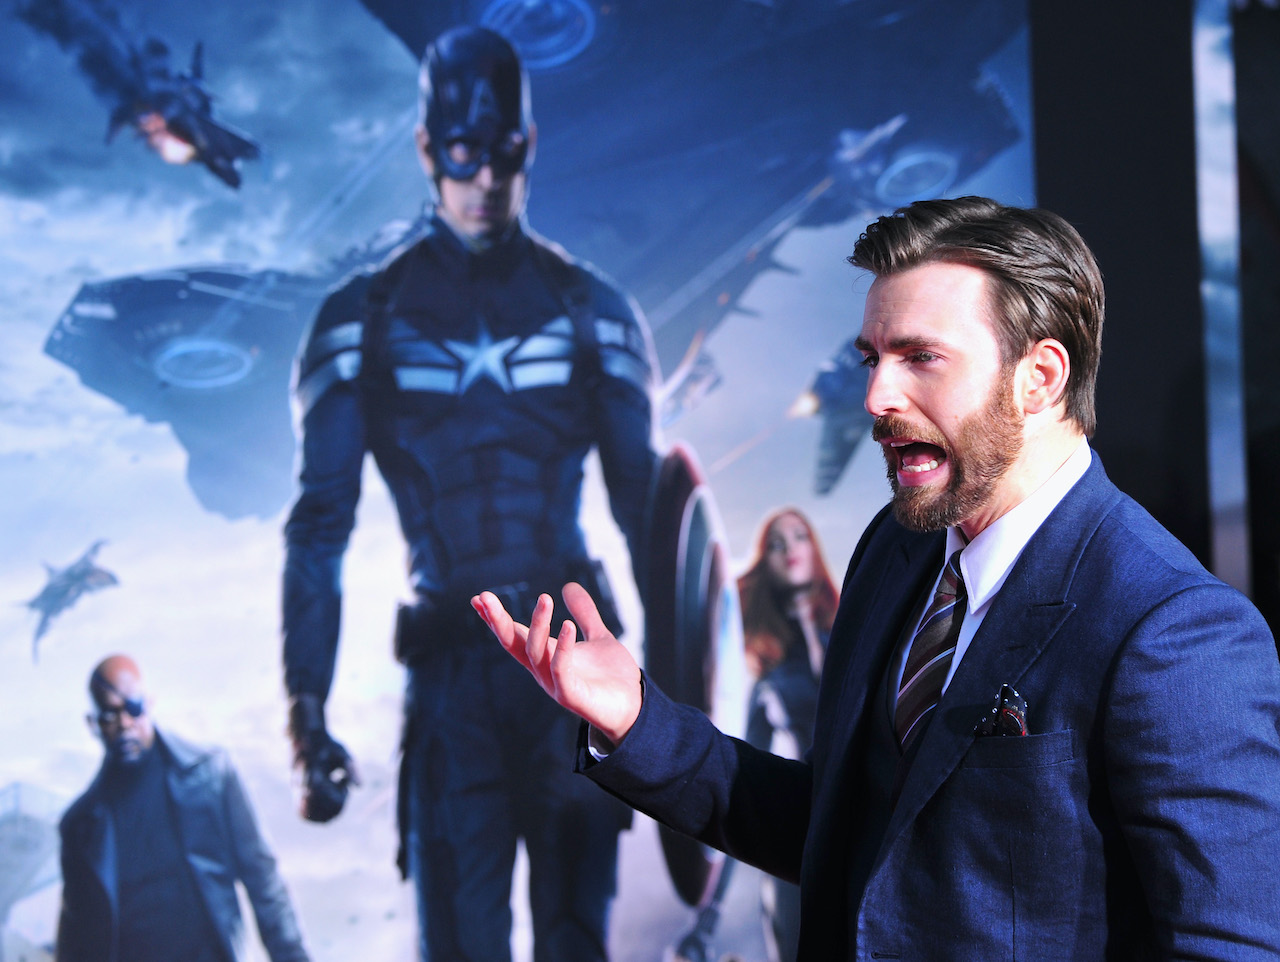 """Chris Evans arrives at the premiere Of Marvel's """"Captain America: The Winter Soldier"""